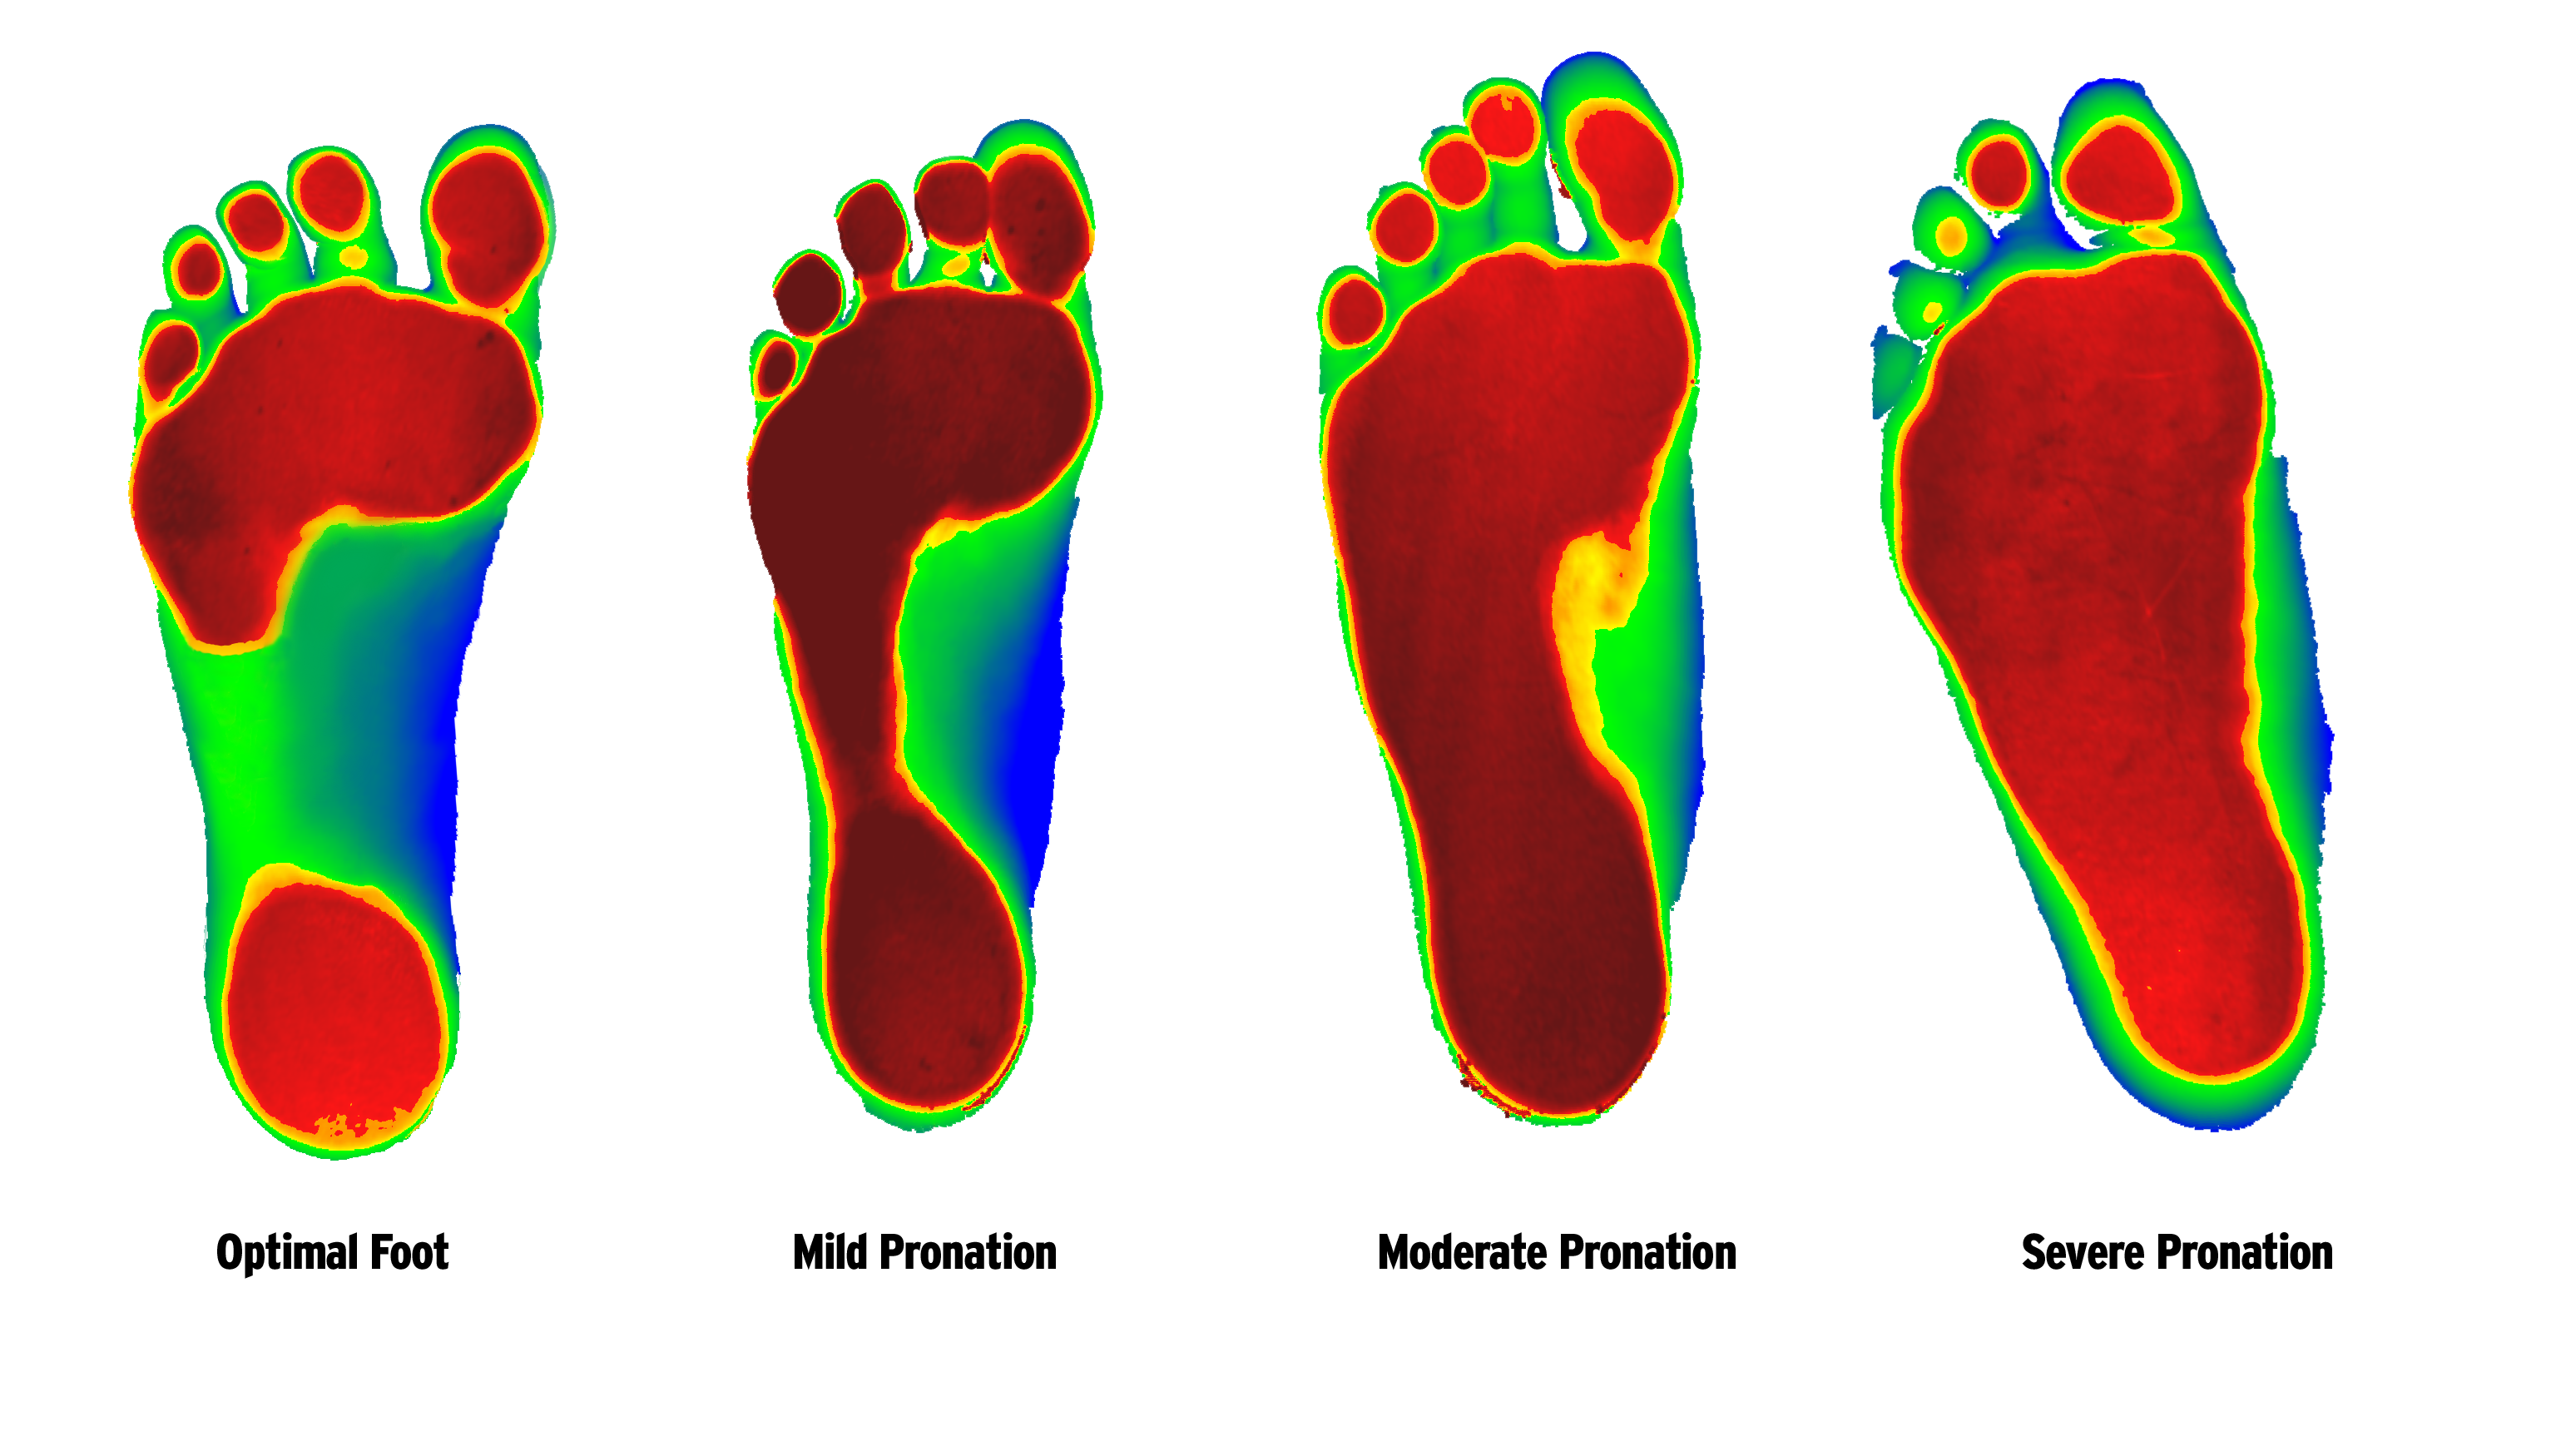 Foot Ranging From Least Severe To Most According To 3D Foot Scan